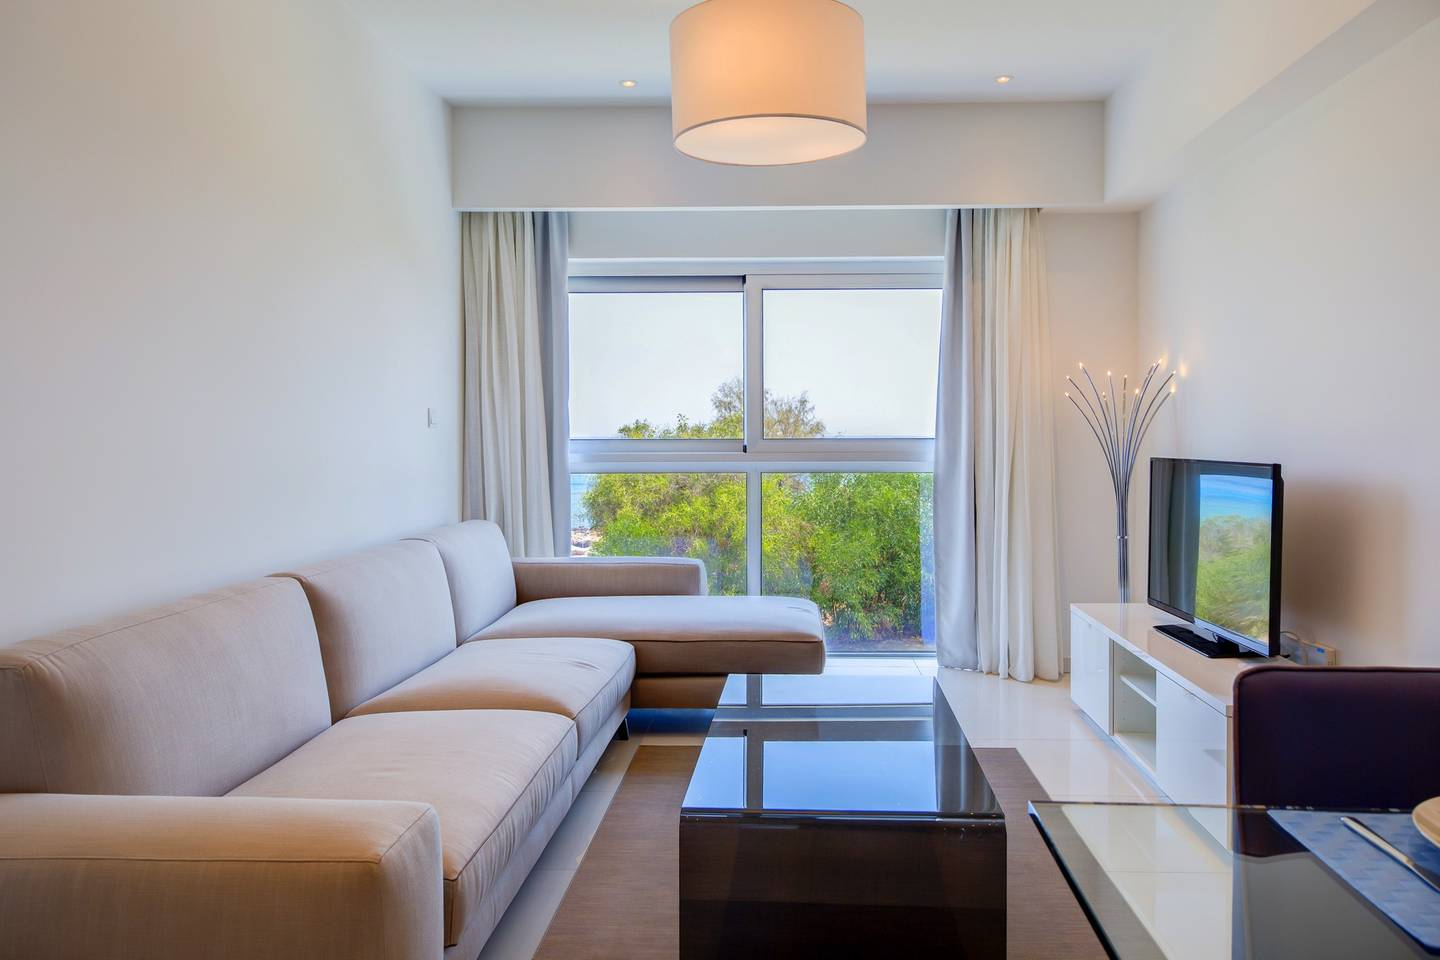 2 Bed Luxury Apt with Large Communal Pool A1-101 photo 25647581